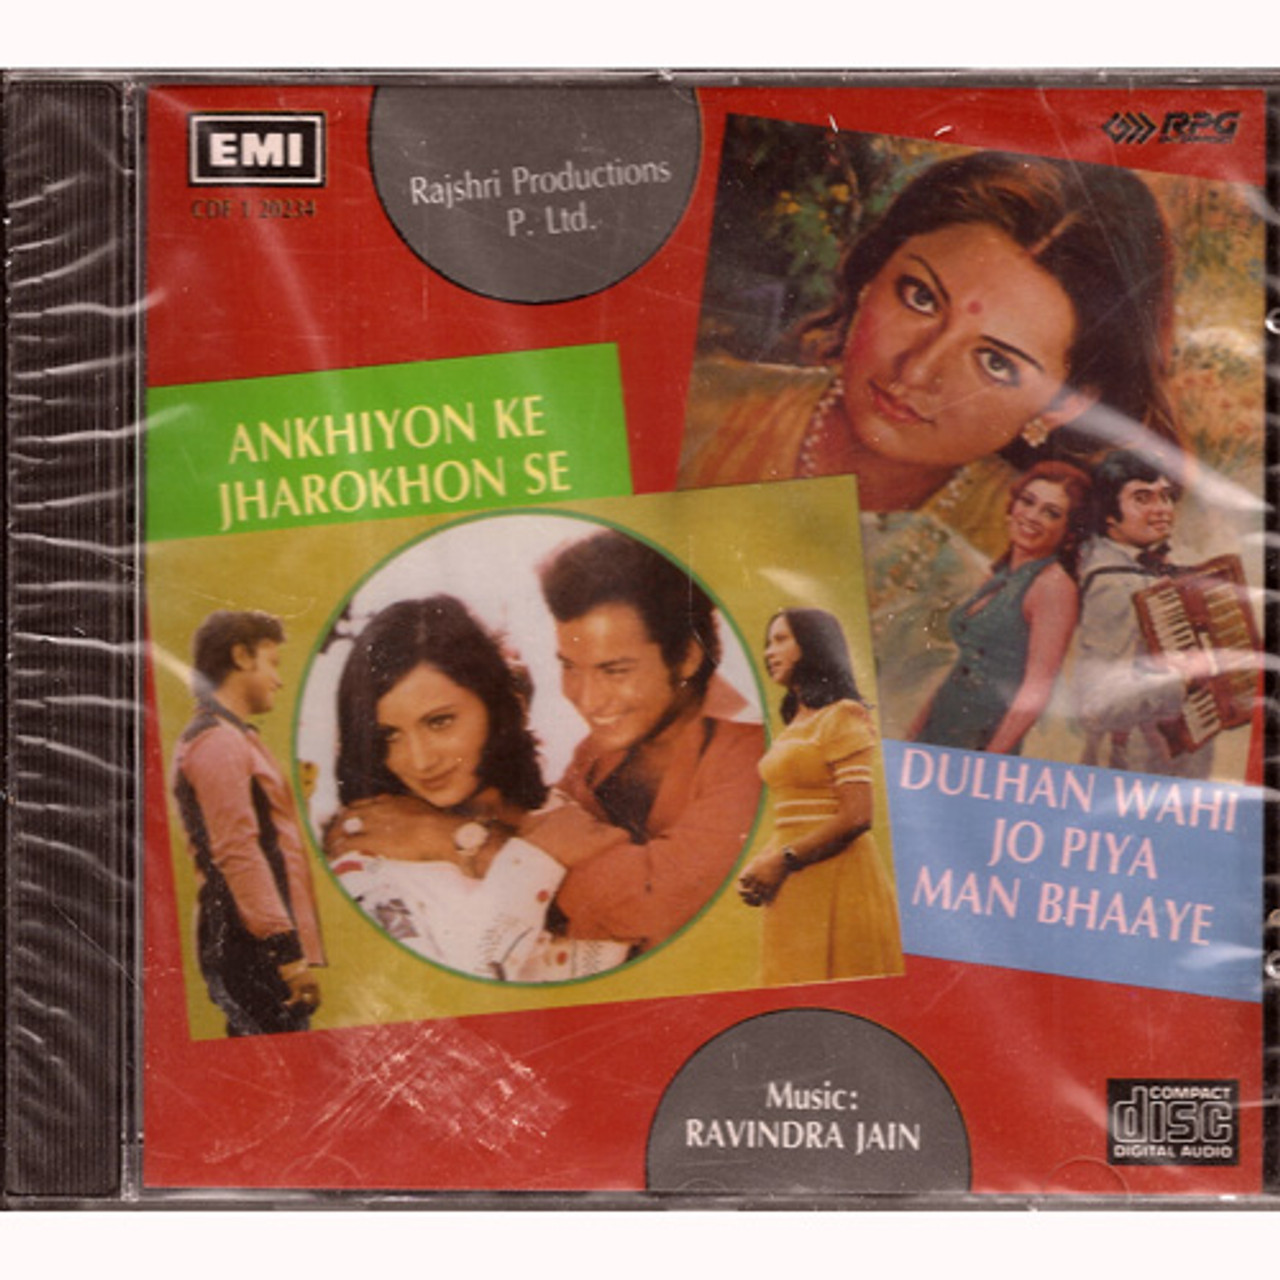 Ankhiyon Ke Jharokhon Se Dulhan Wahi Jo Piya Man Bhaaye 2 In 1 Made In Uk India Town Gifts